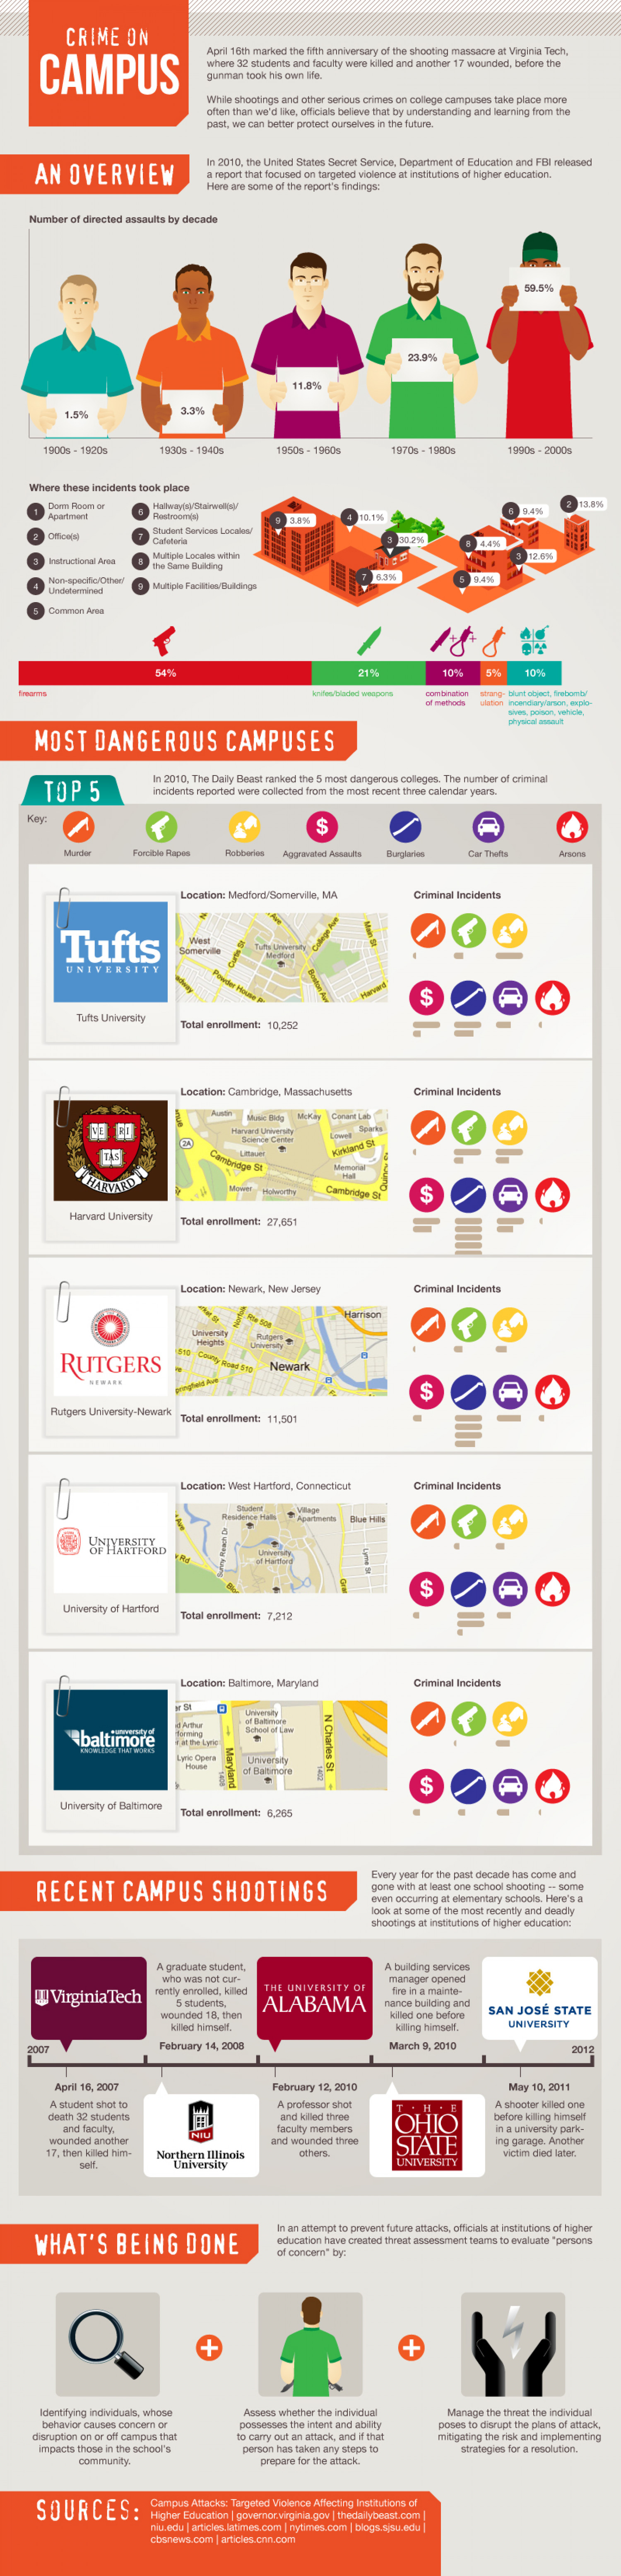 Crime on Campus Infographic